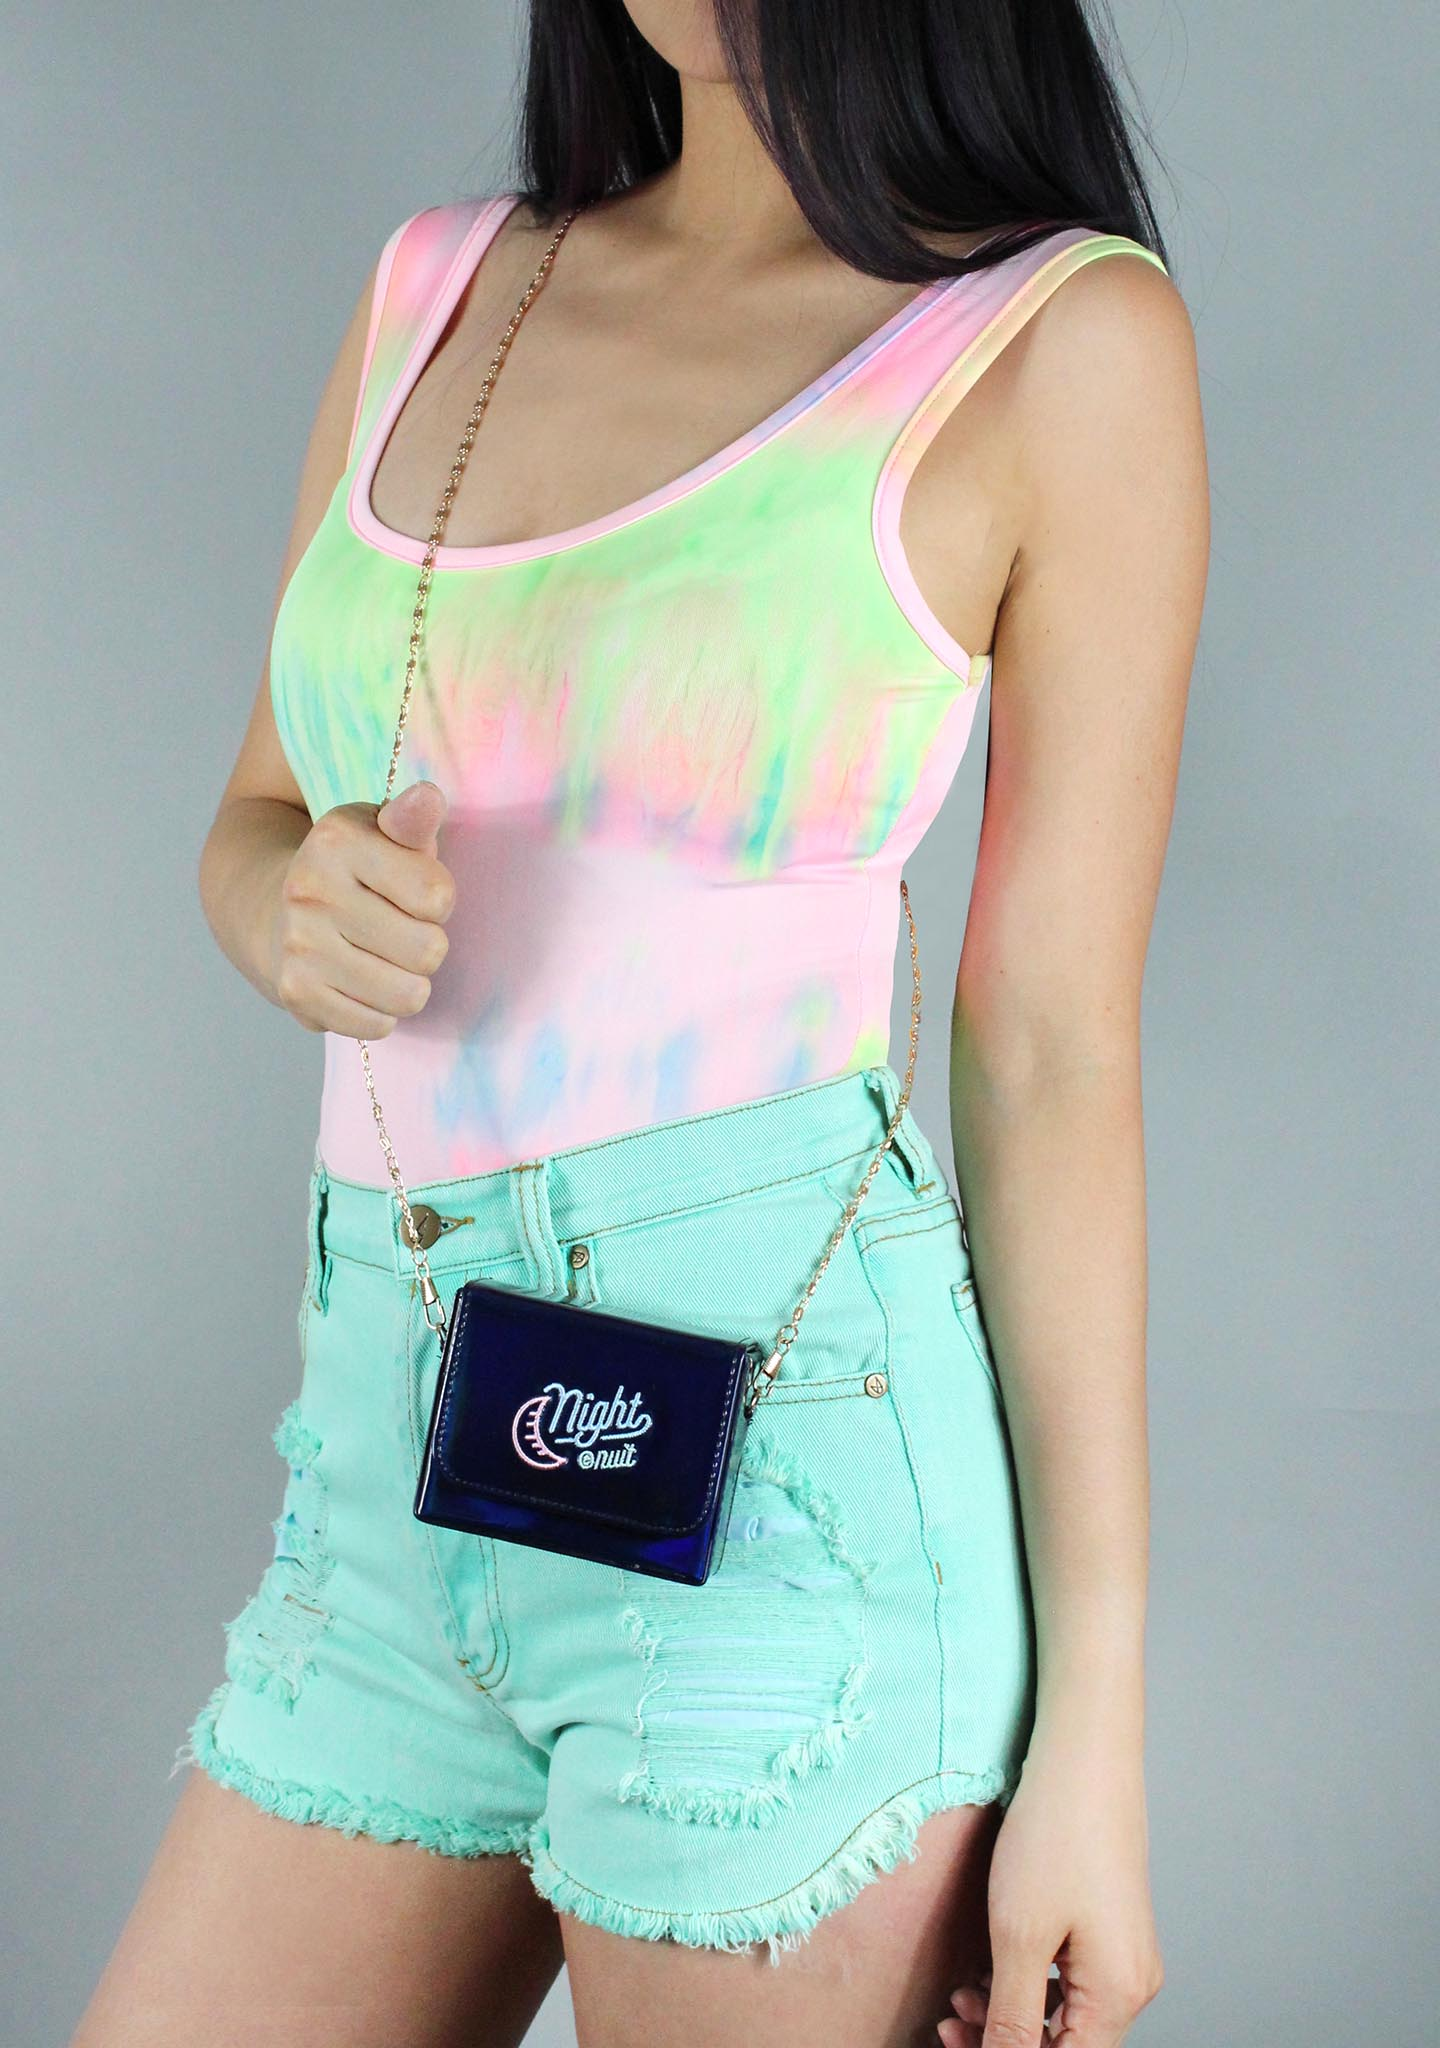 7 LUXE Night Out Crossbody Bag in Holographic Navy